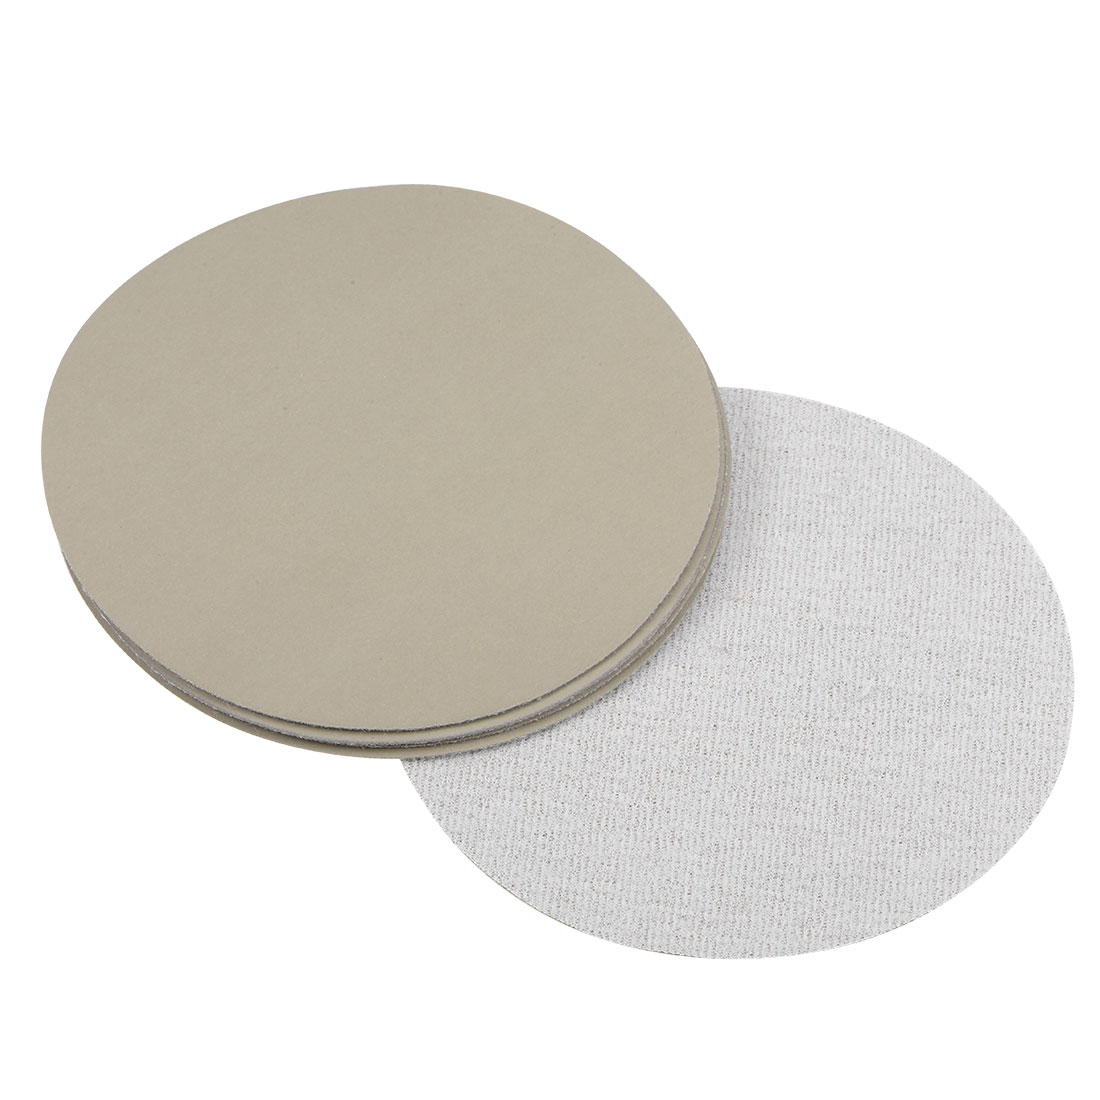 5 inch Wet Dry Discs 4000 Grit Hook and Loop Sanding Disc Silicon Carbide 5pcs